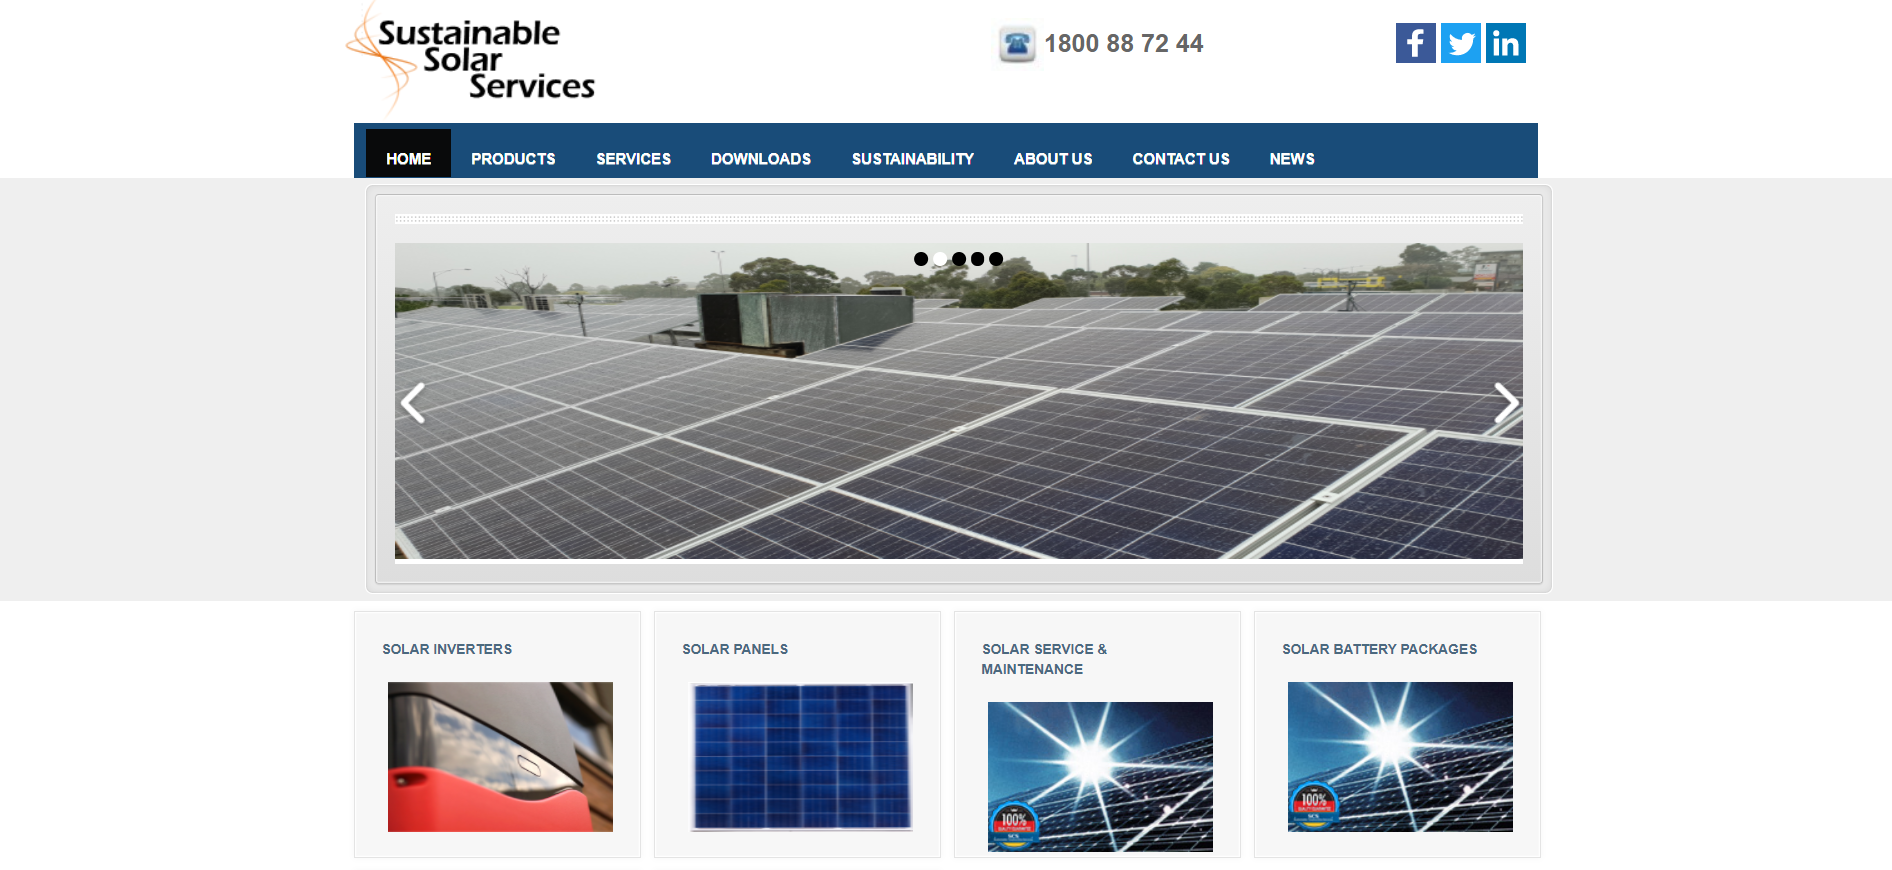 Sustainable Solar Services